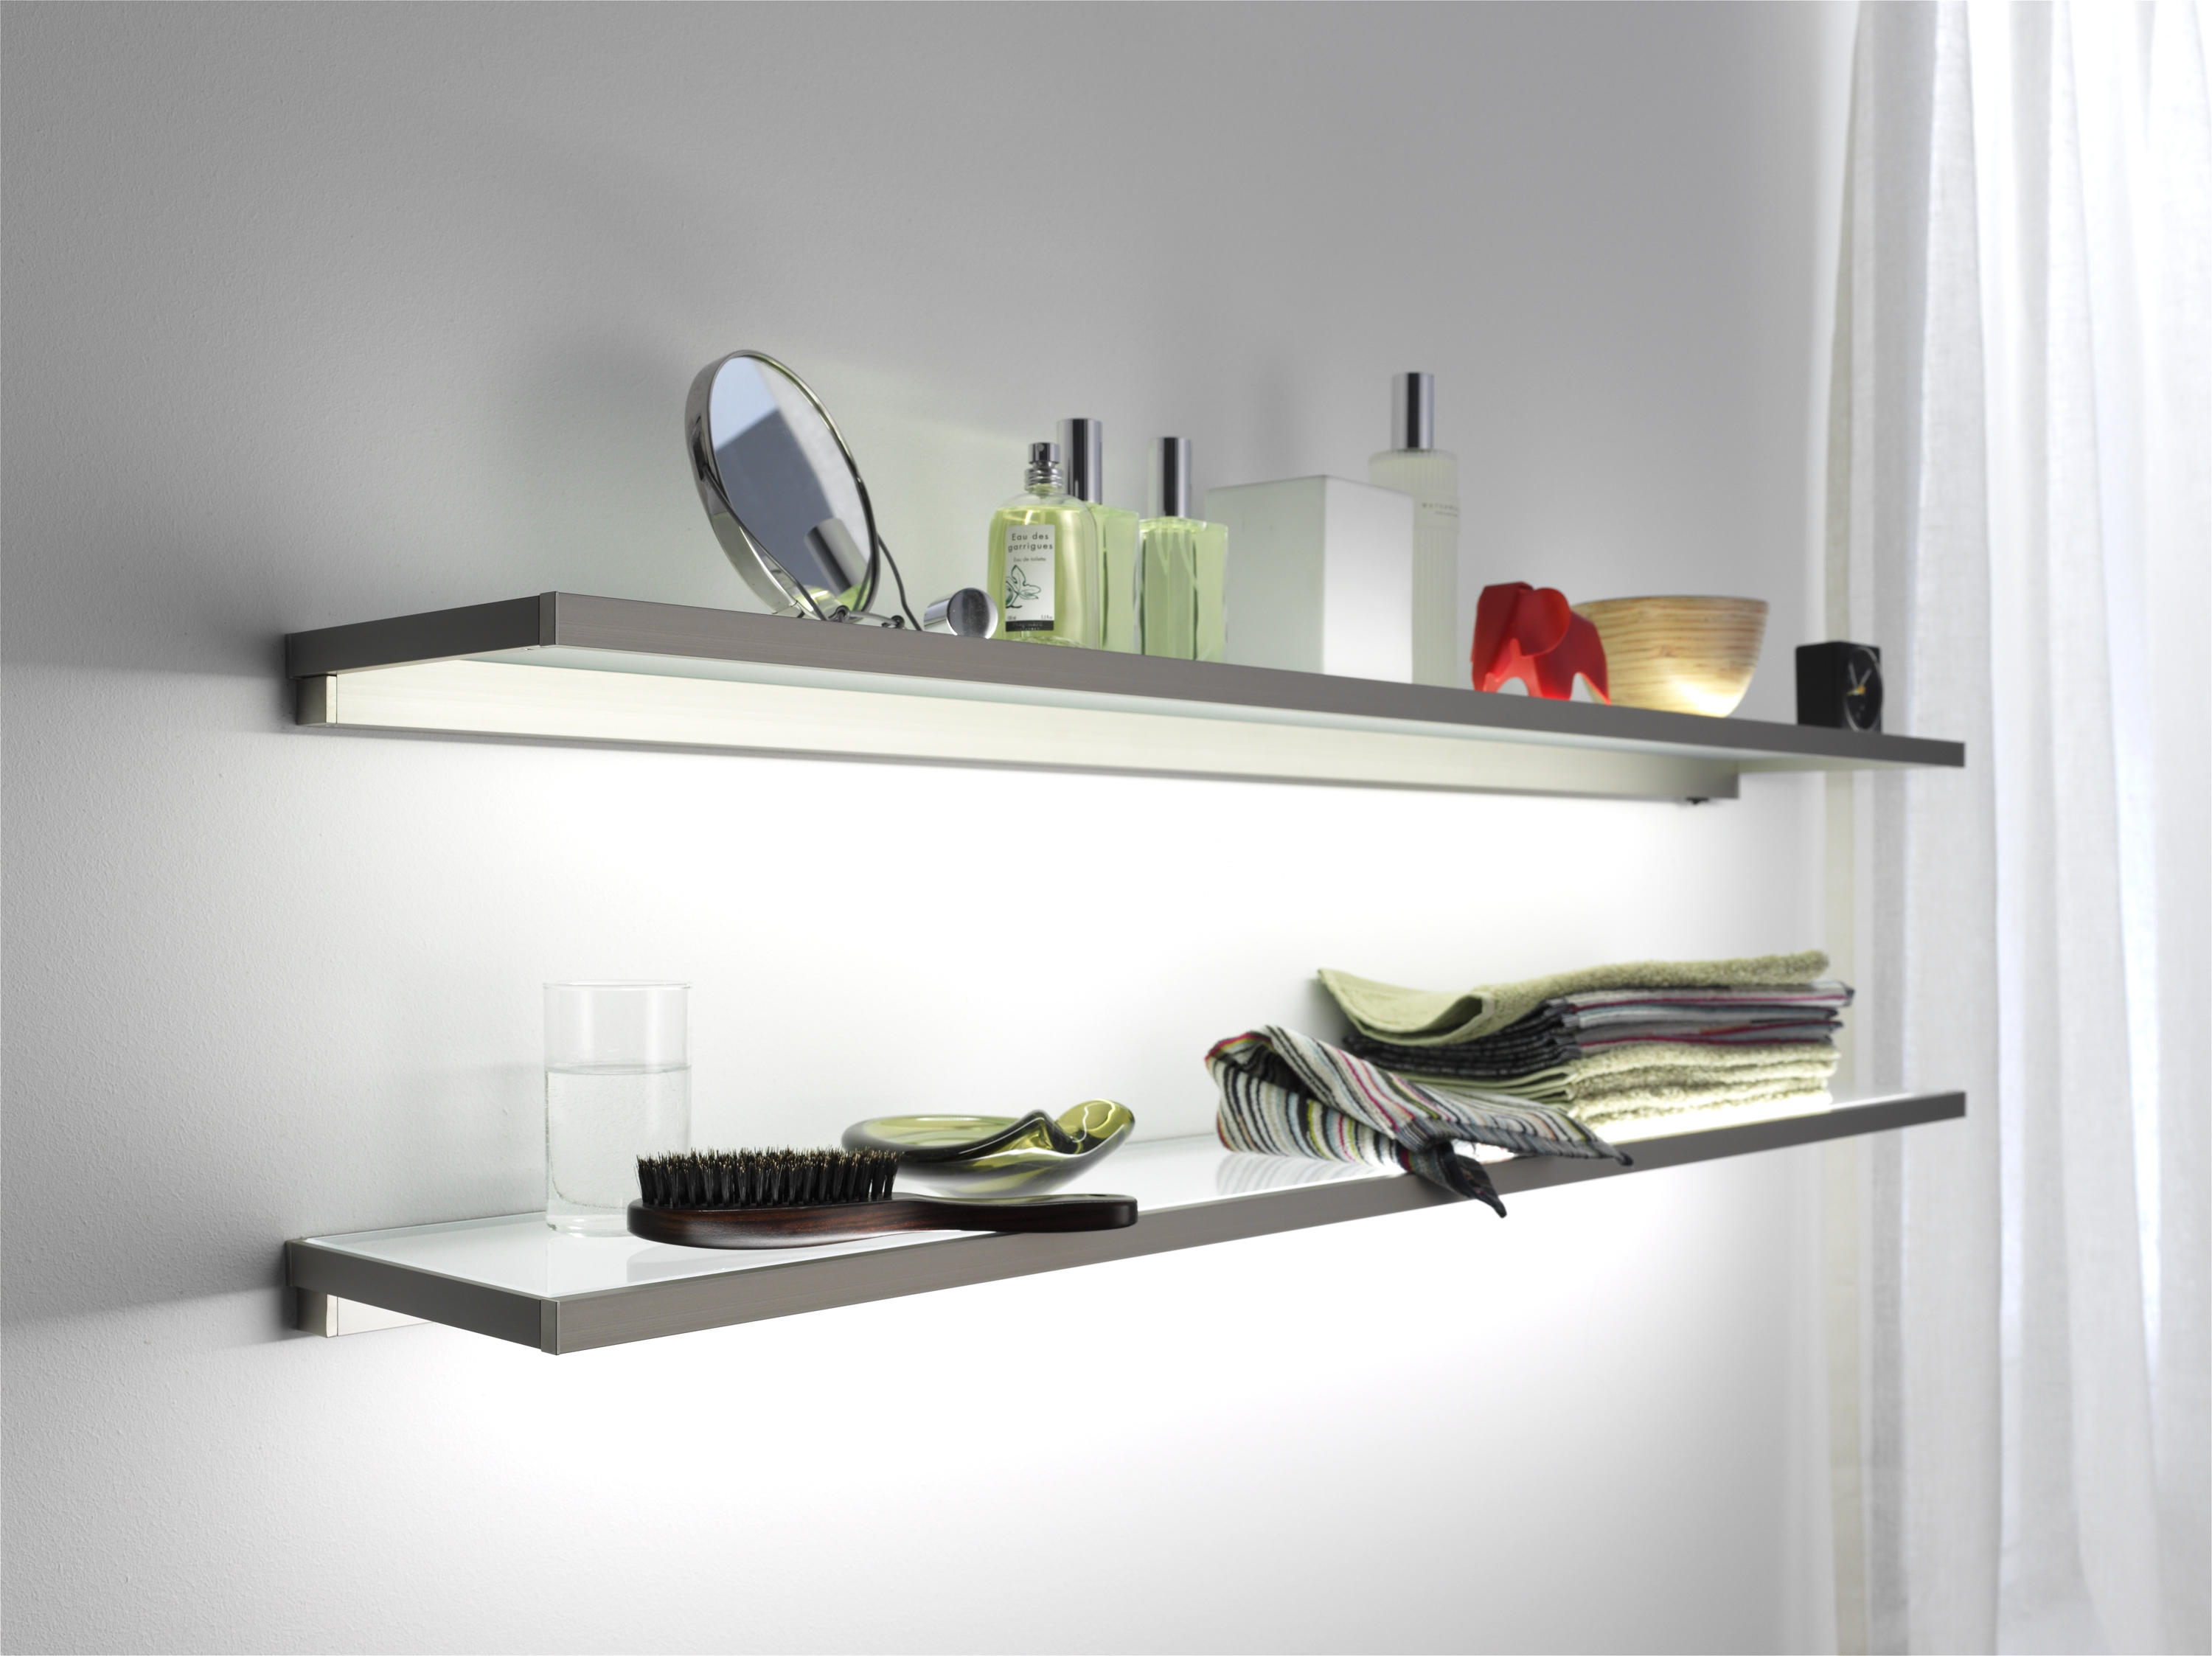 Glass Shelf Gera Light System 4 Illuminated Shelving From Gera In Illuminated Glass Shelf (Image 4 of 15)